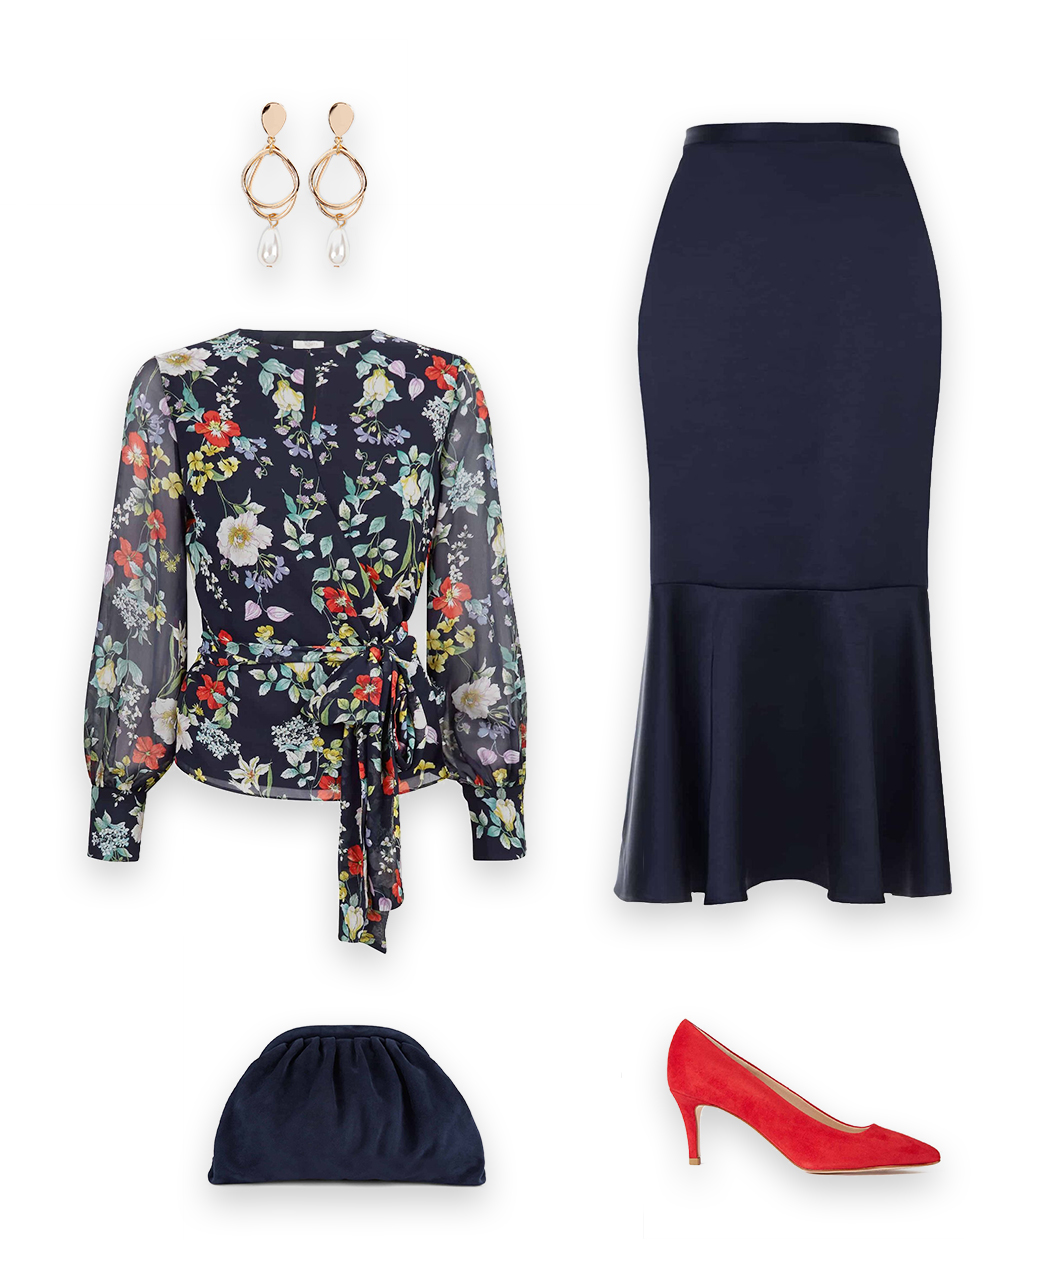 Styled for elegant evening events, the neavy floral meadow blouse with a navy blue satin midi skirt, red suede heeled court, pearl and gold earrings and navy blue clutch bag